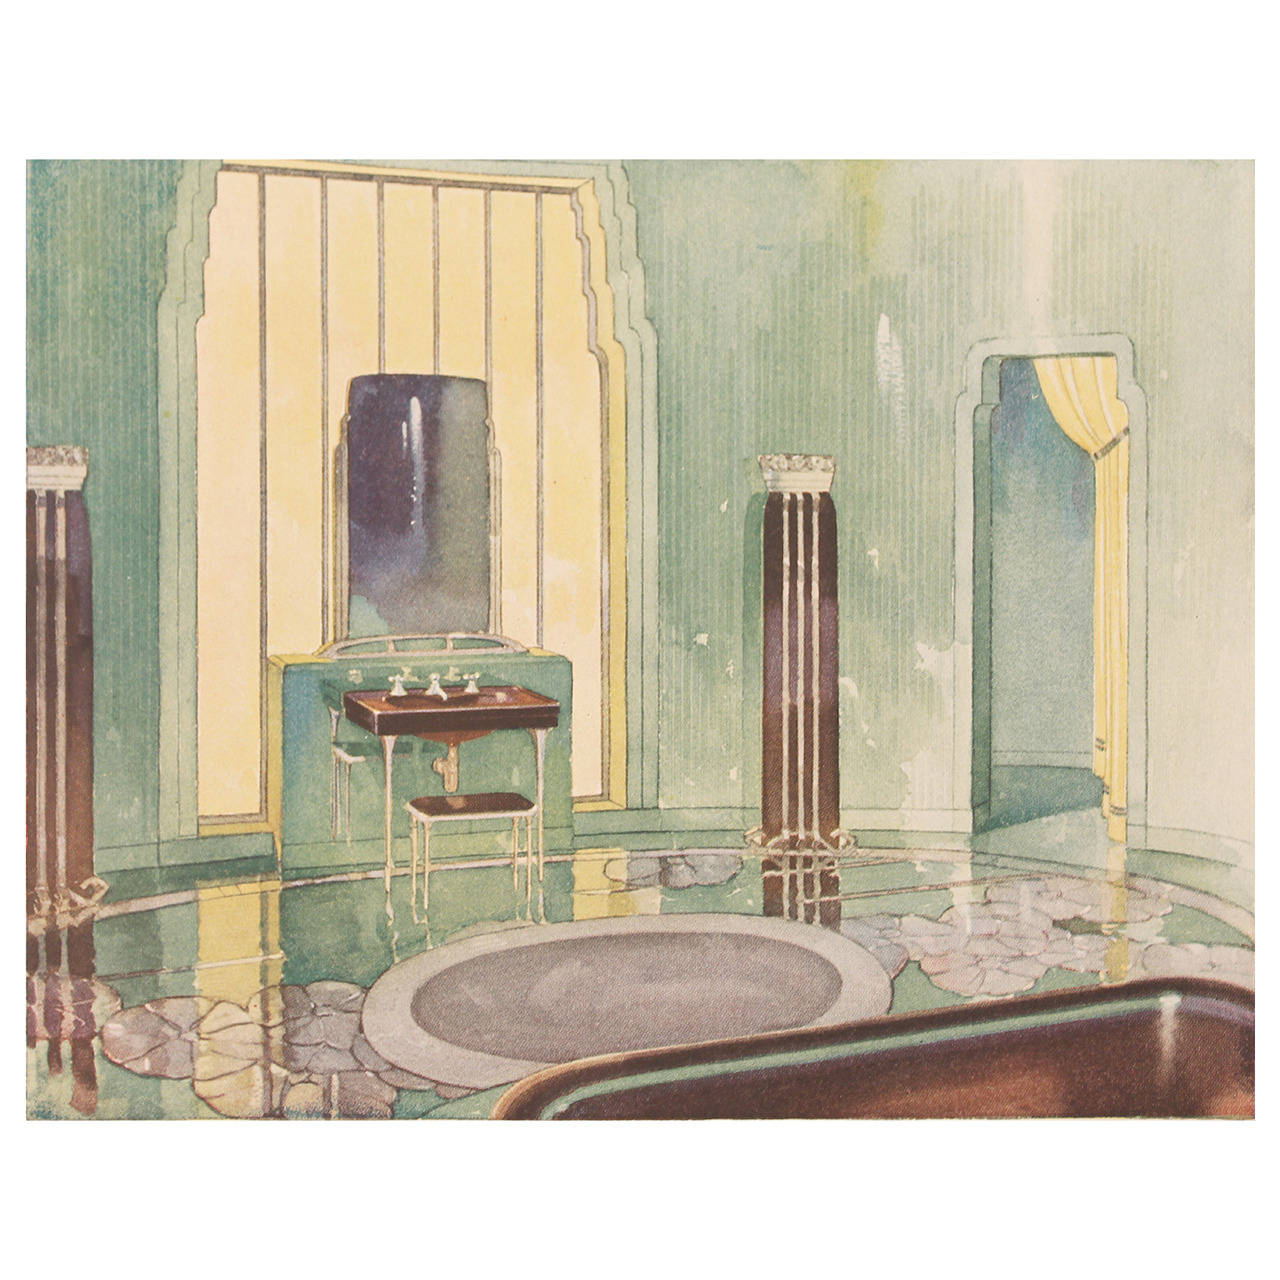 1931 art deco bathroom interior design architecture reference book at 1stdibs